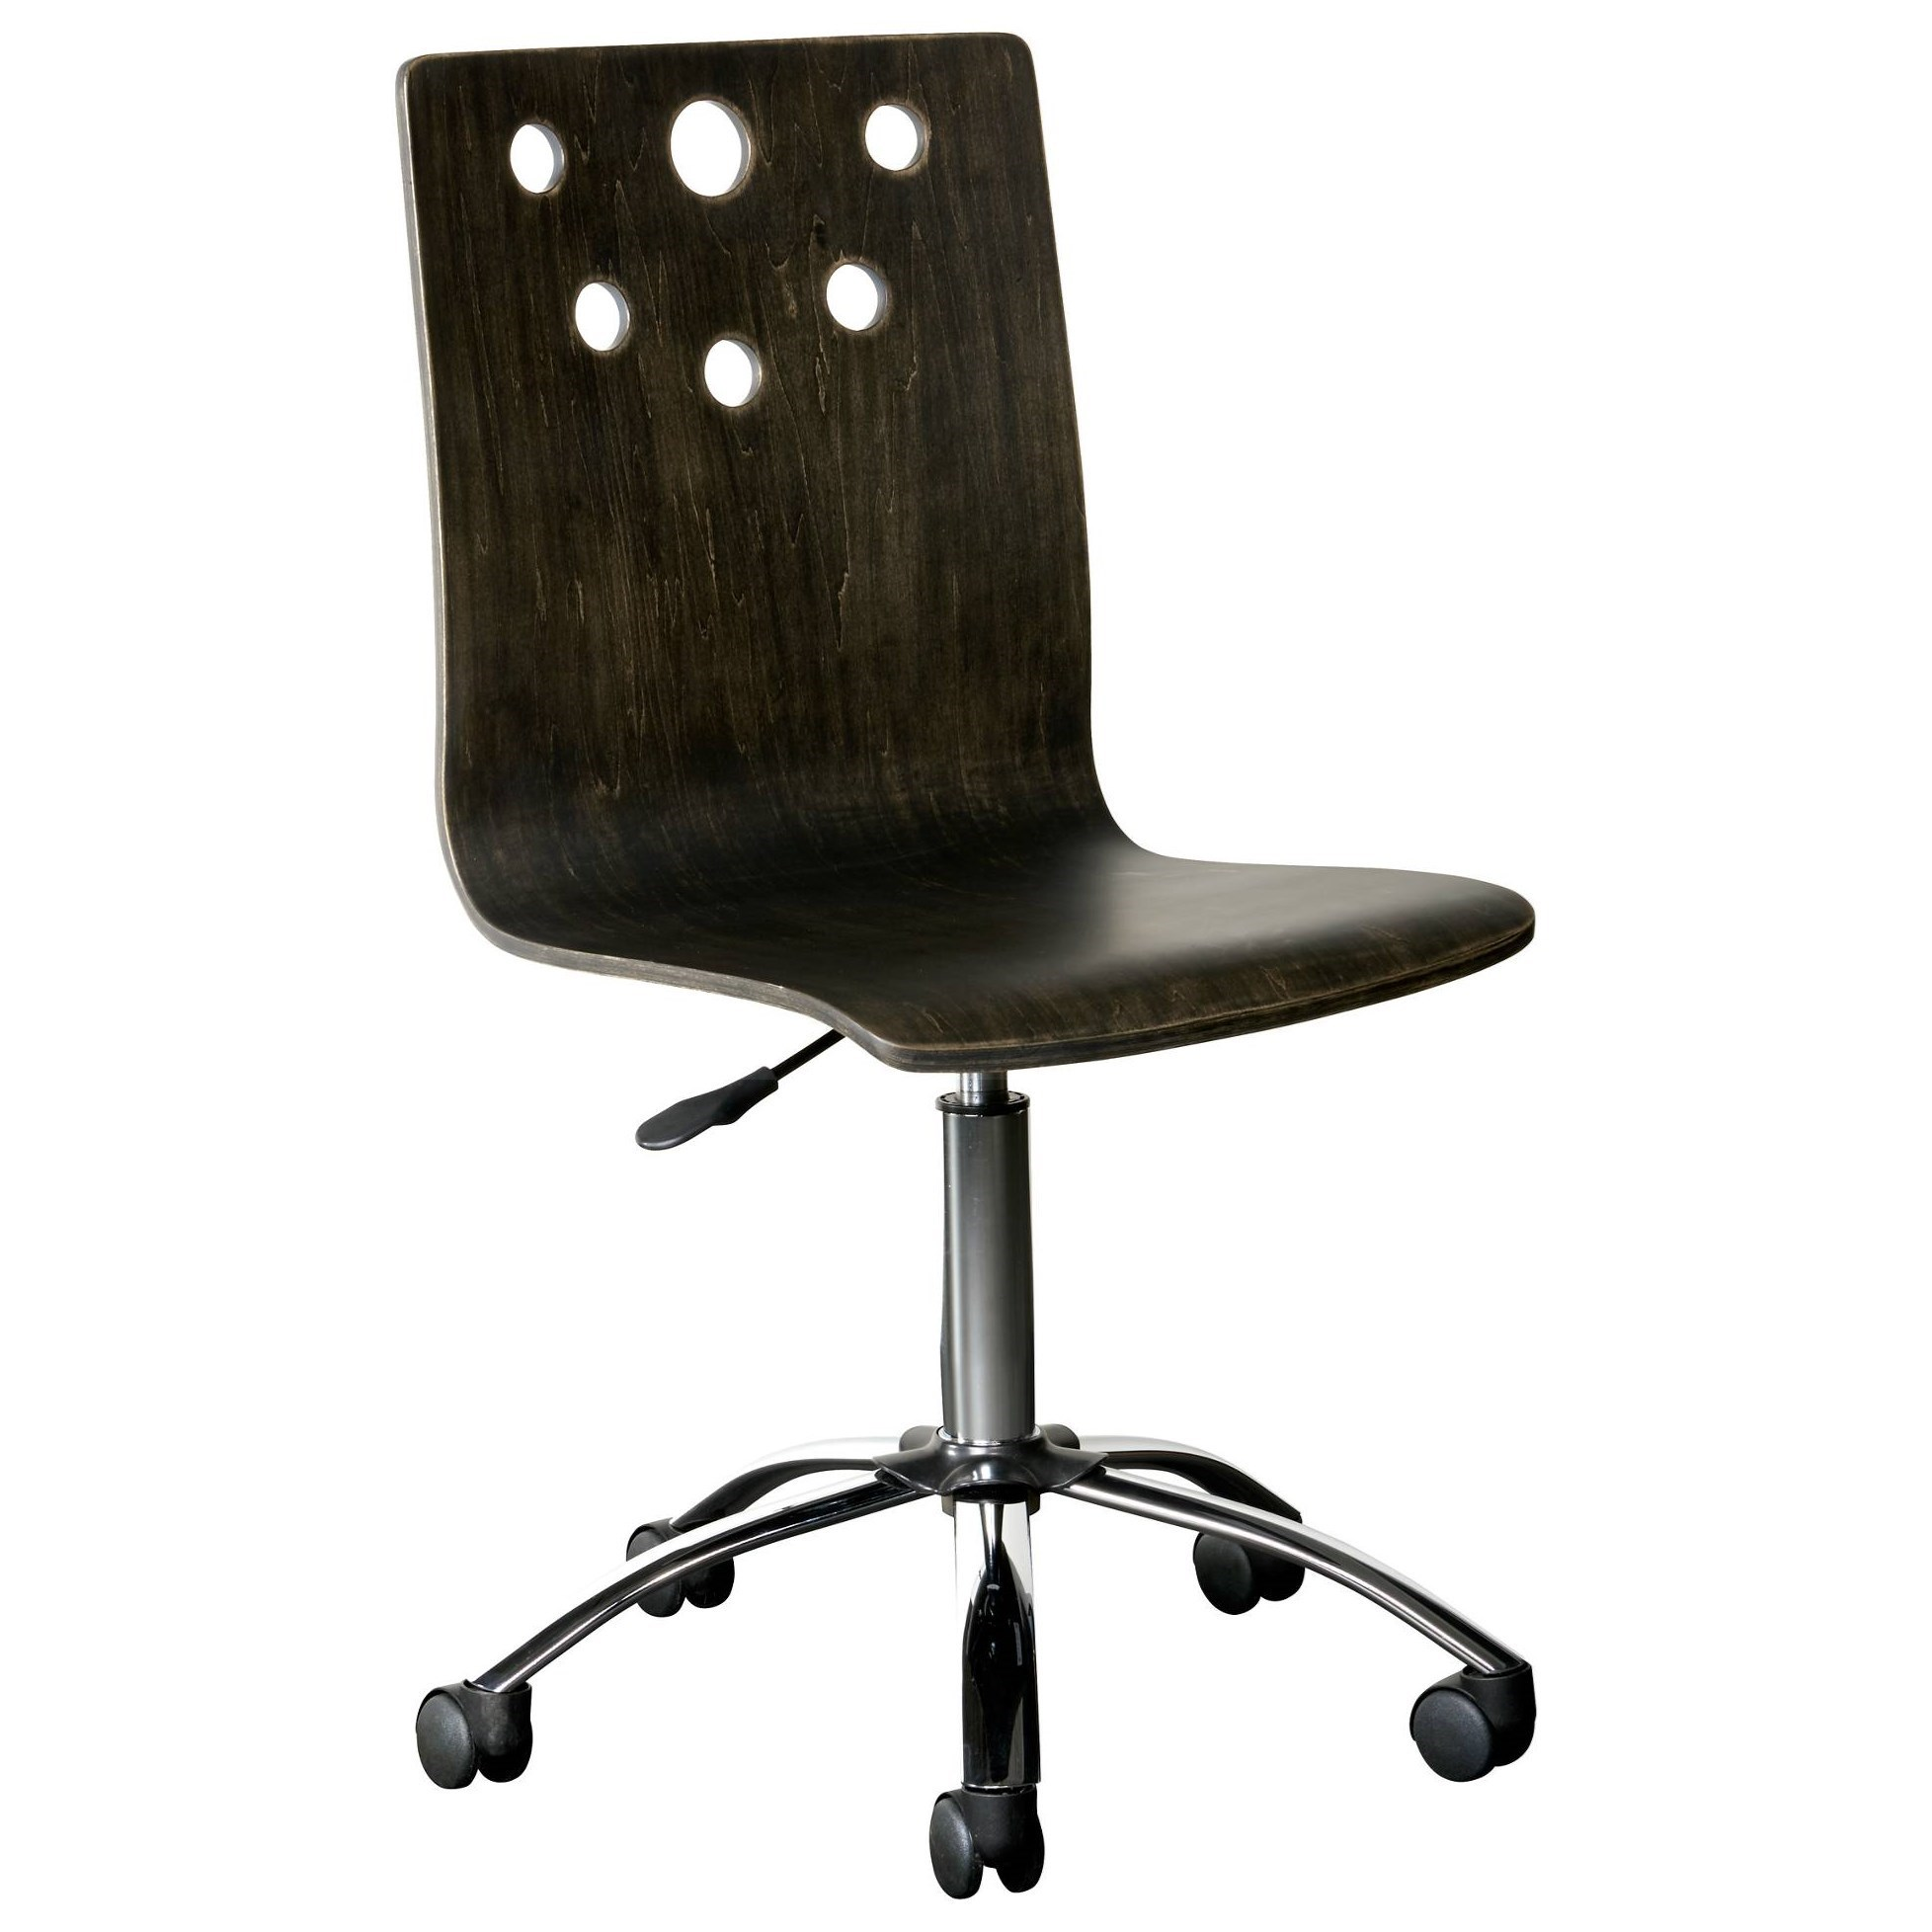 Stone & Leigh Furniture Smiling Hill Desk Chair - Item Number: 560-83-71